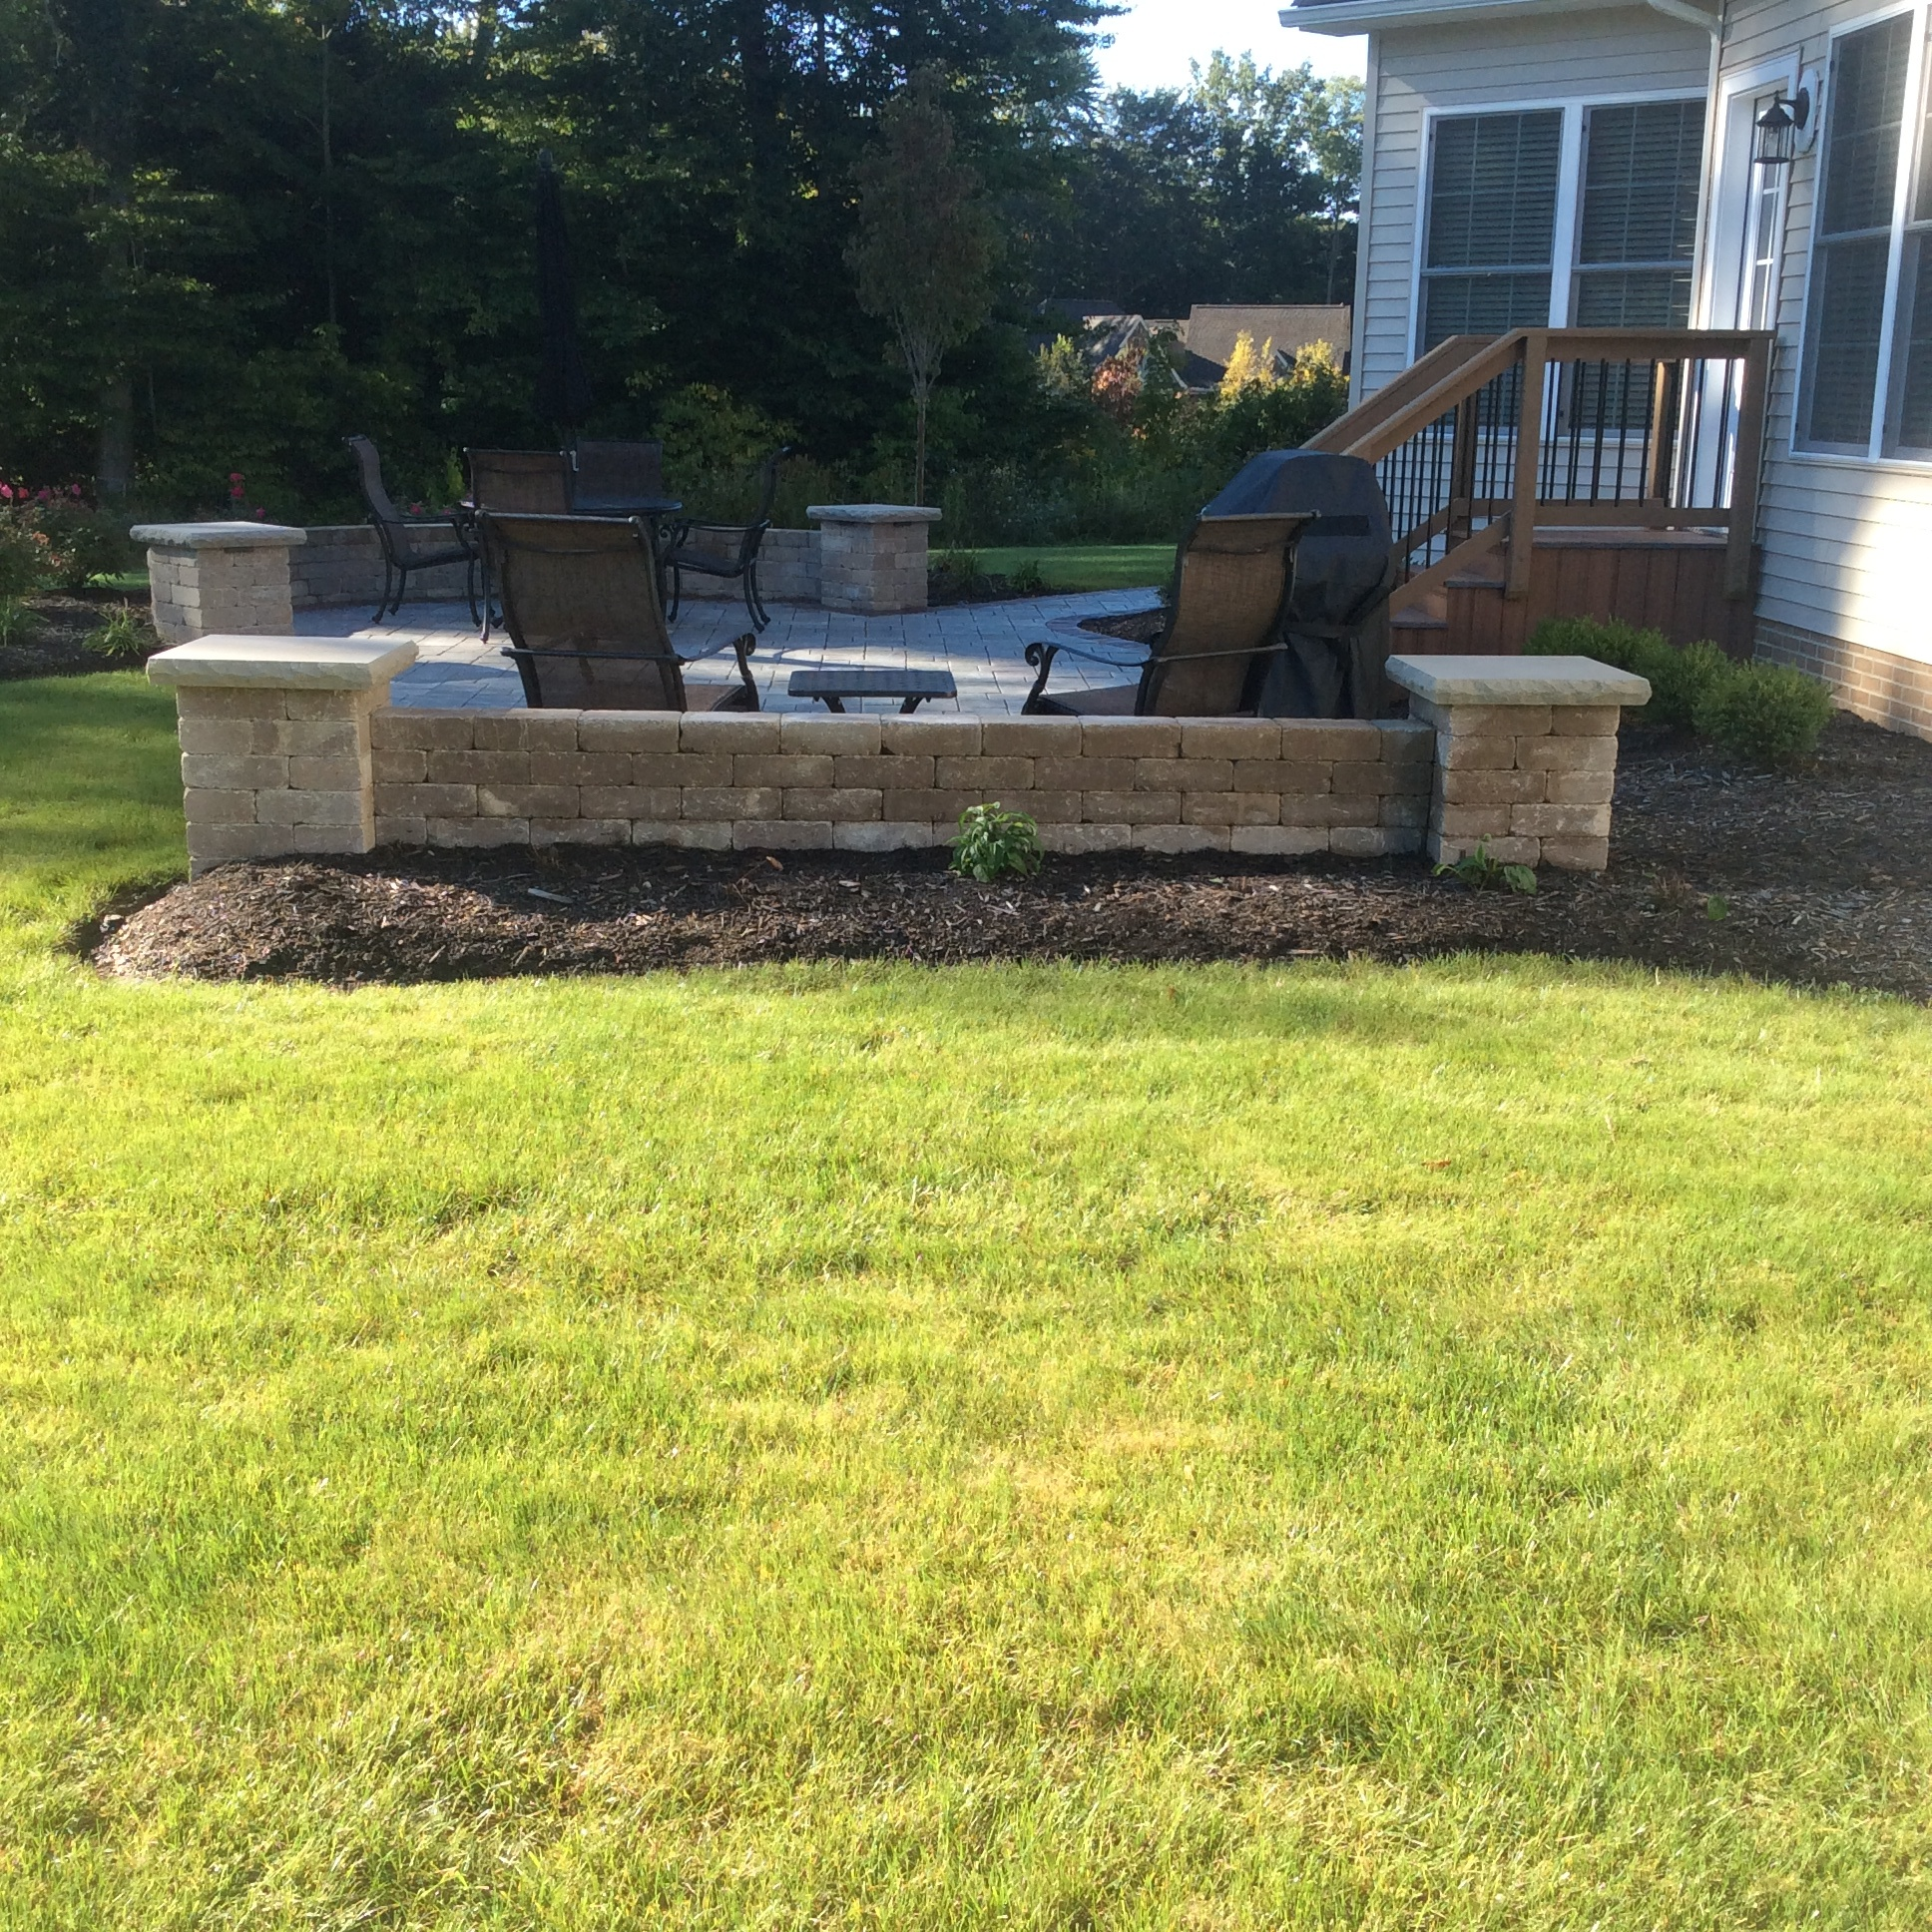 Top landscaping companies for lawn care in Hudson OH